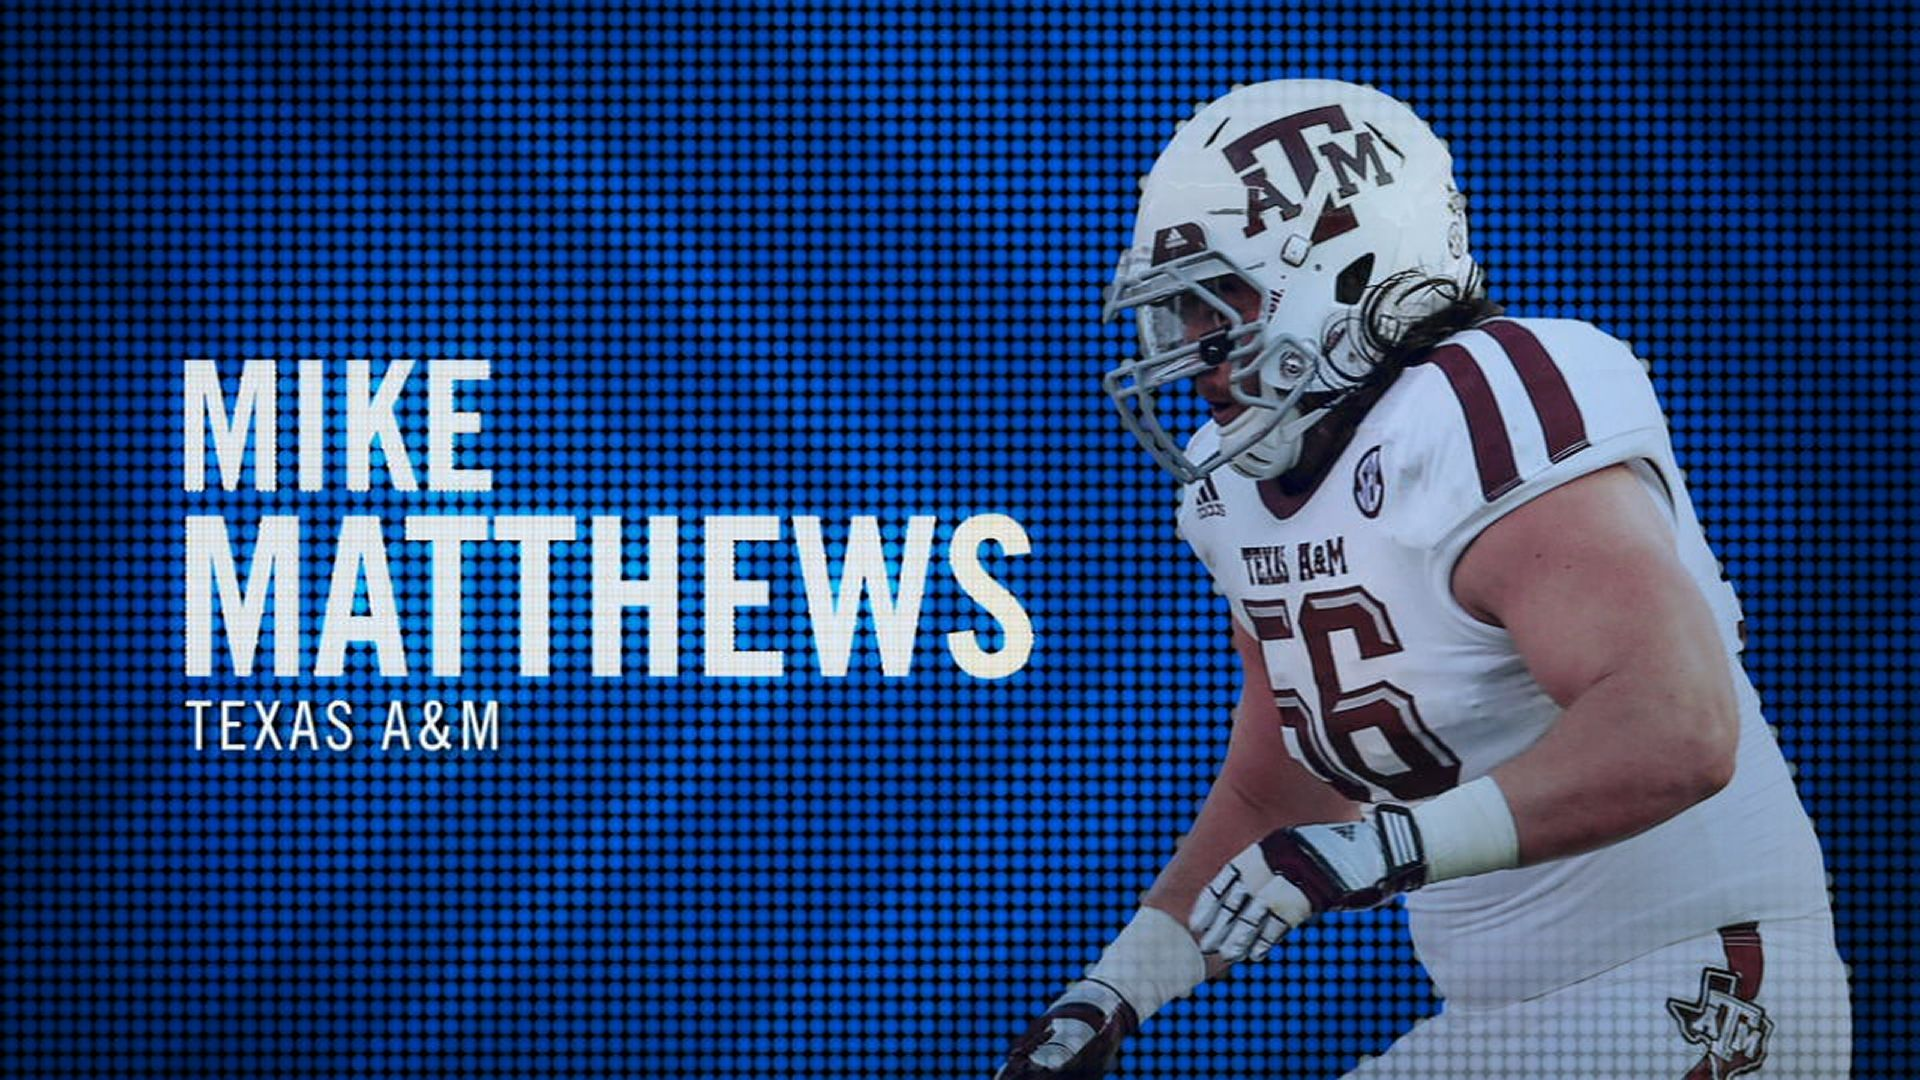 I am the SEC: Texas A&M's Mike Matthews